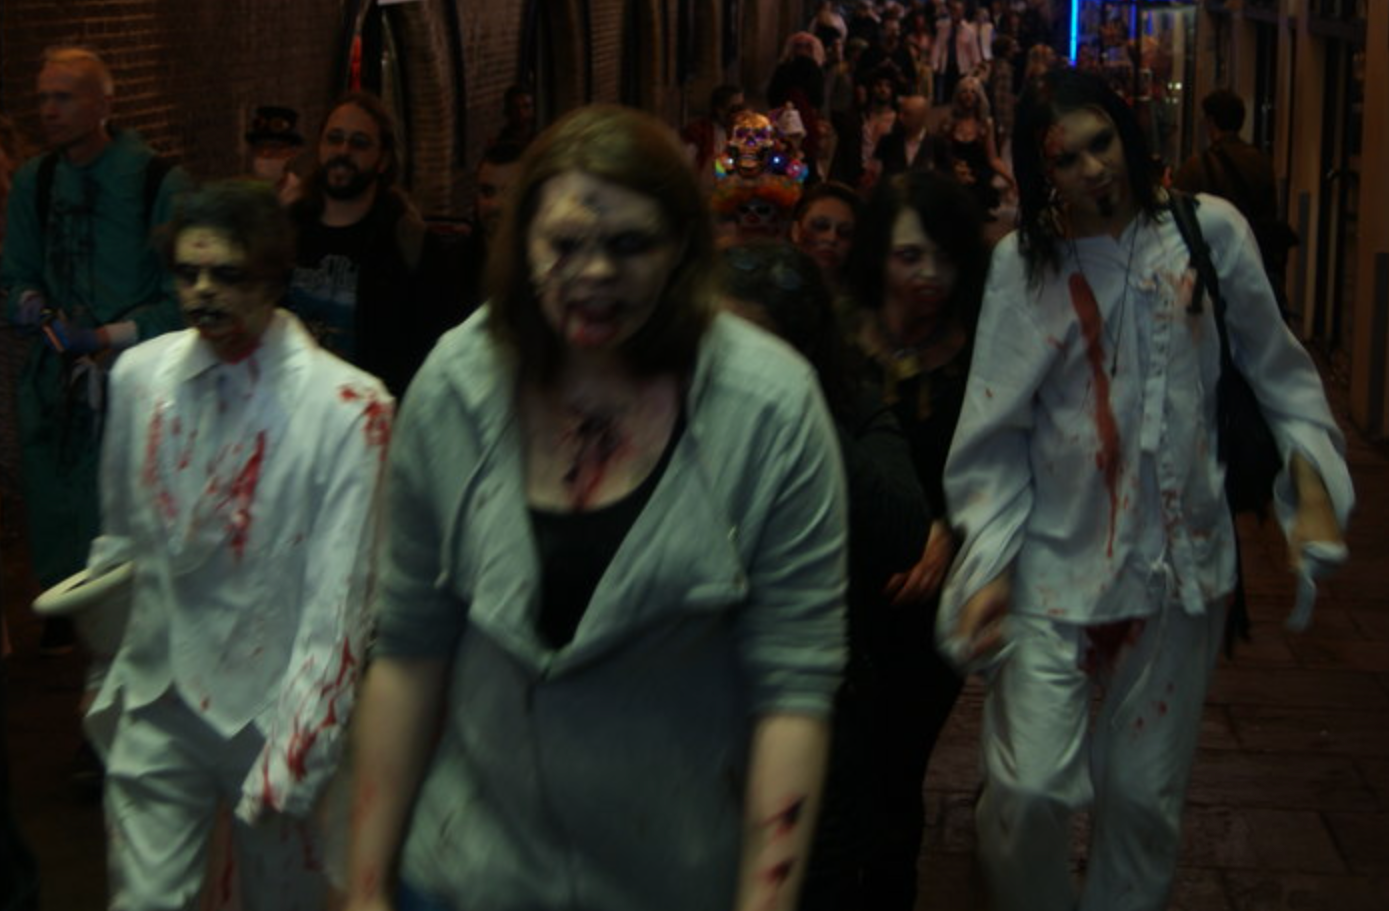 There's a zombie apocalypse experience coming to an abandoned Wigan shopping centre, The Manc